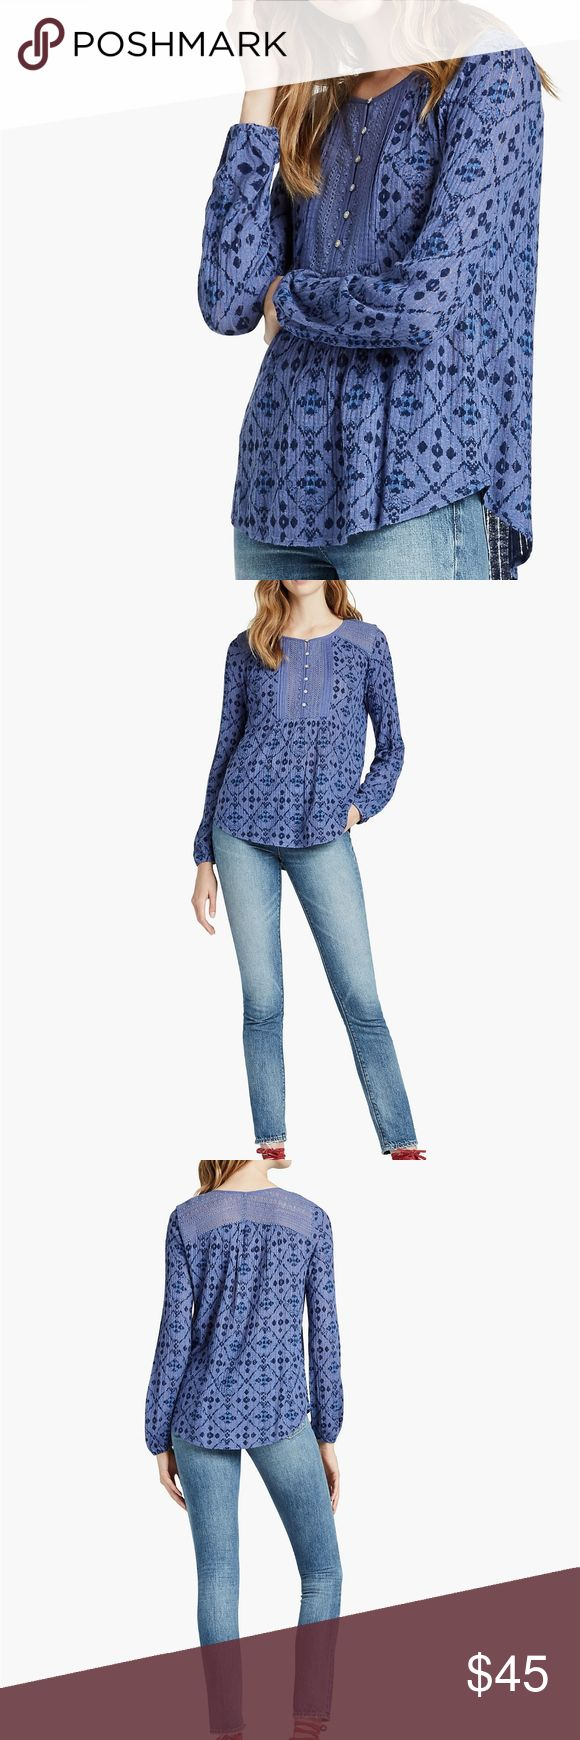 NWT Lucky Brand Drop Needle Knit Top in Blue New with tags! Intricate front embroidery, a dynamic geo print and a flowy silhouette give this top major boho vibes.  Front length: 26 inches Back length: 26.5 inches Sleeve length: 30.5 inches 80% Viscose, 20% Linen Lucky Brand Tops Blouses